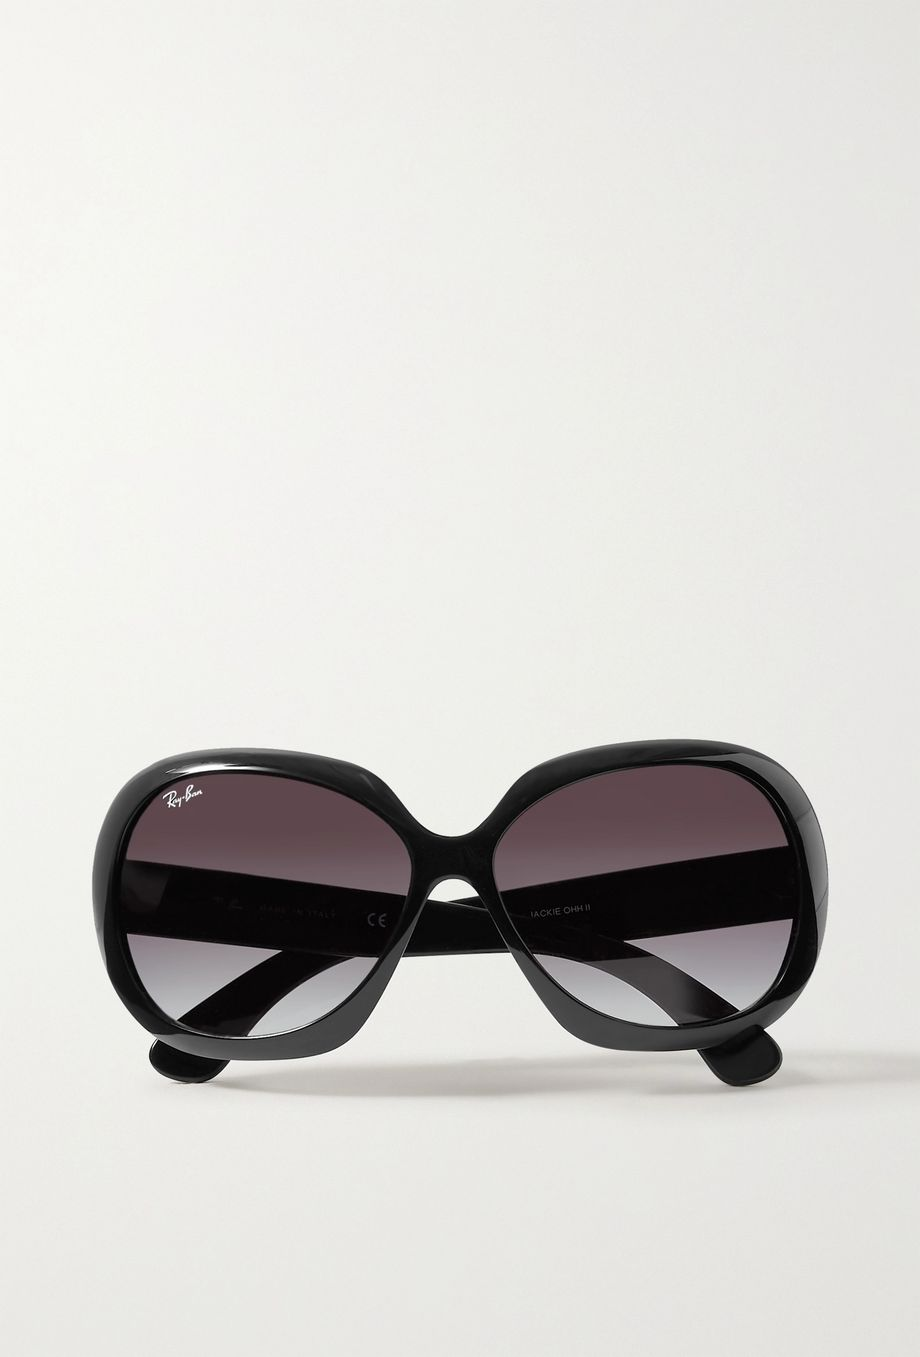 Ray-Ban Jackie Ohh II oversized square-frame acetate sunglasses